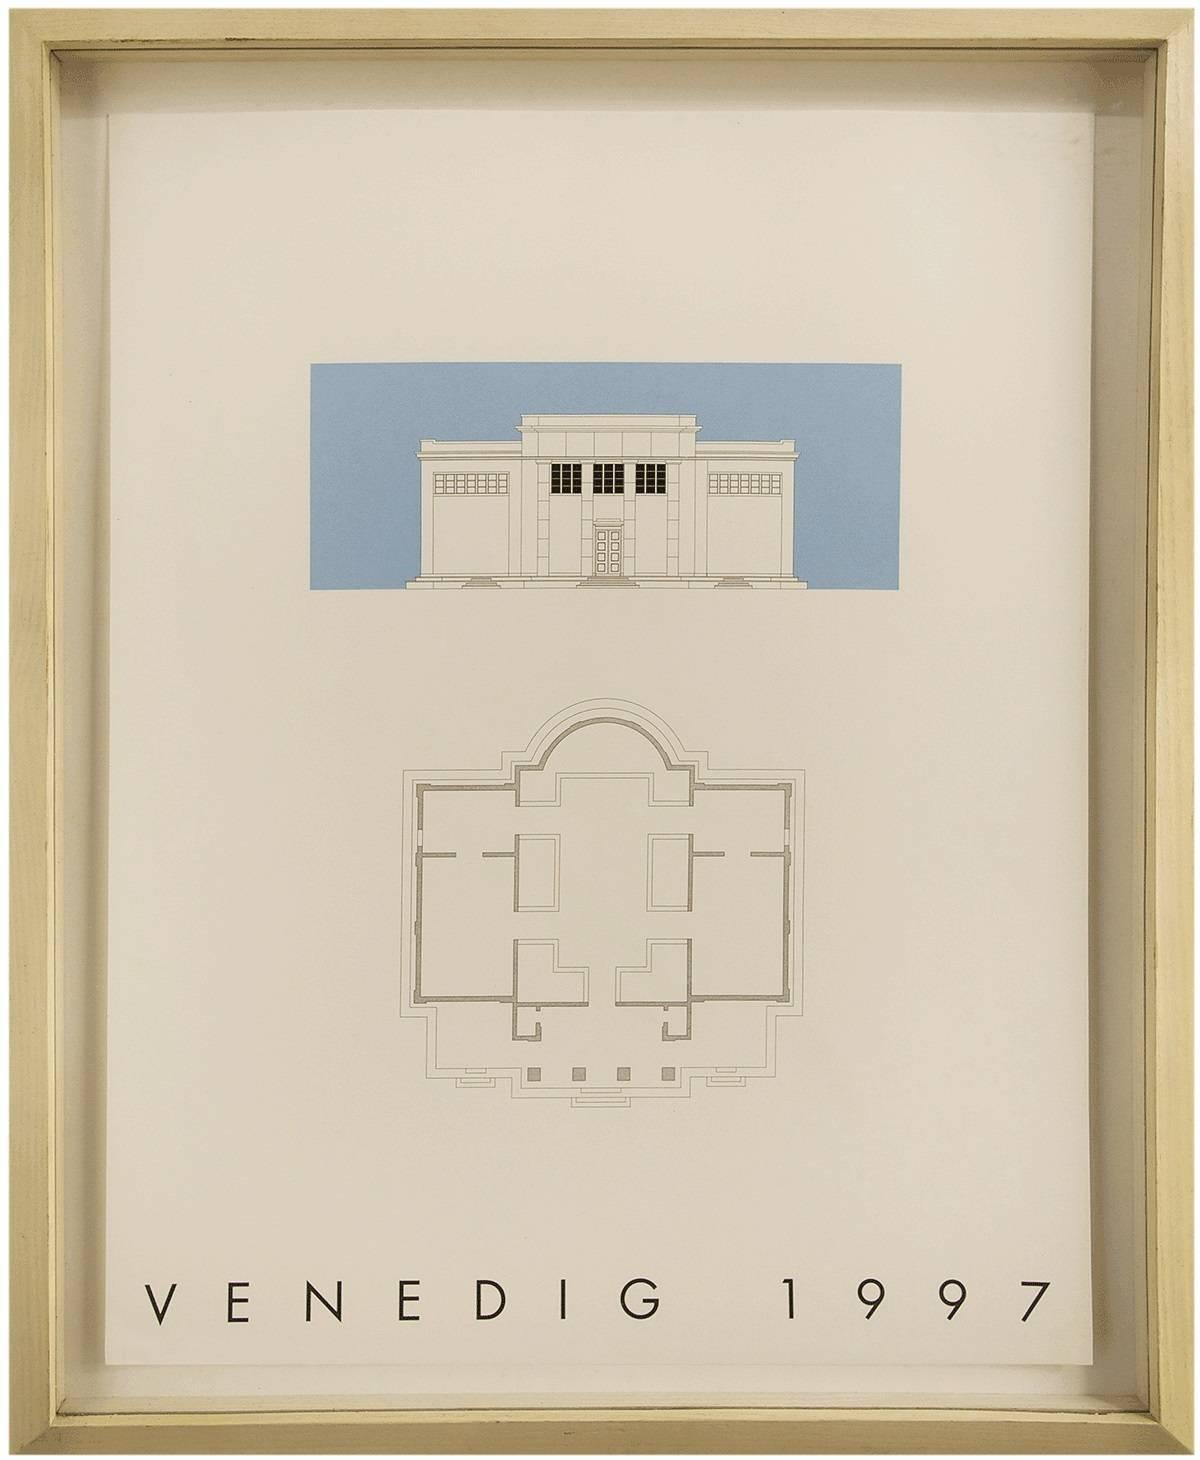 VENEDIG 1997, Silkscreen Print, 2 of 3 from the 'Sequences' Series